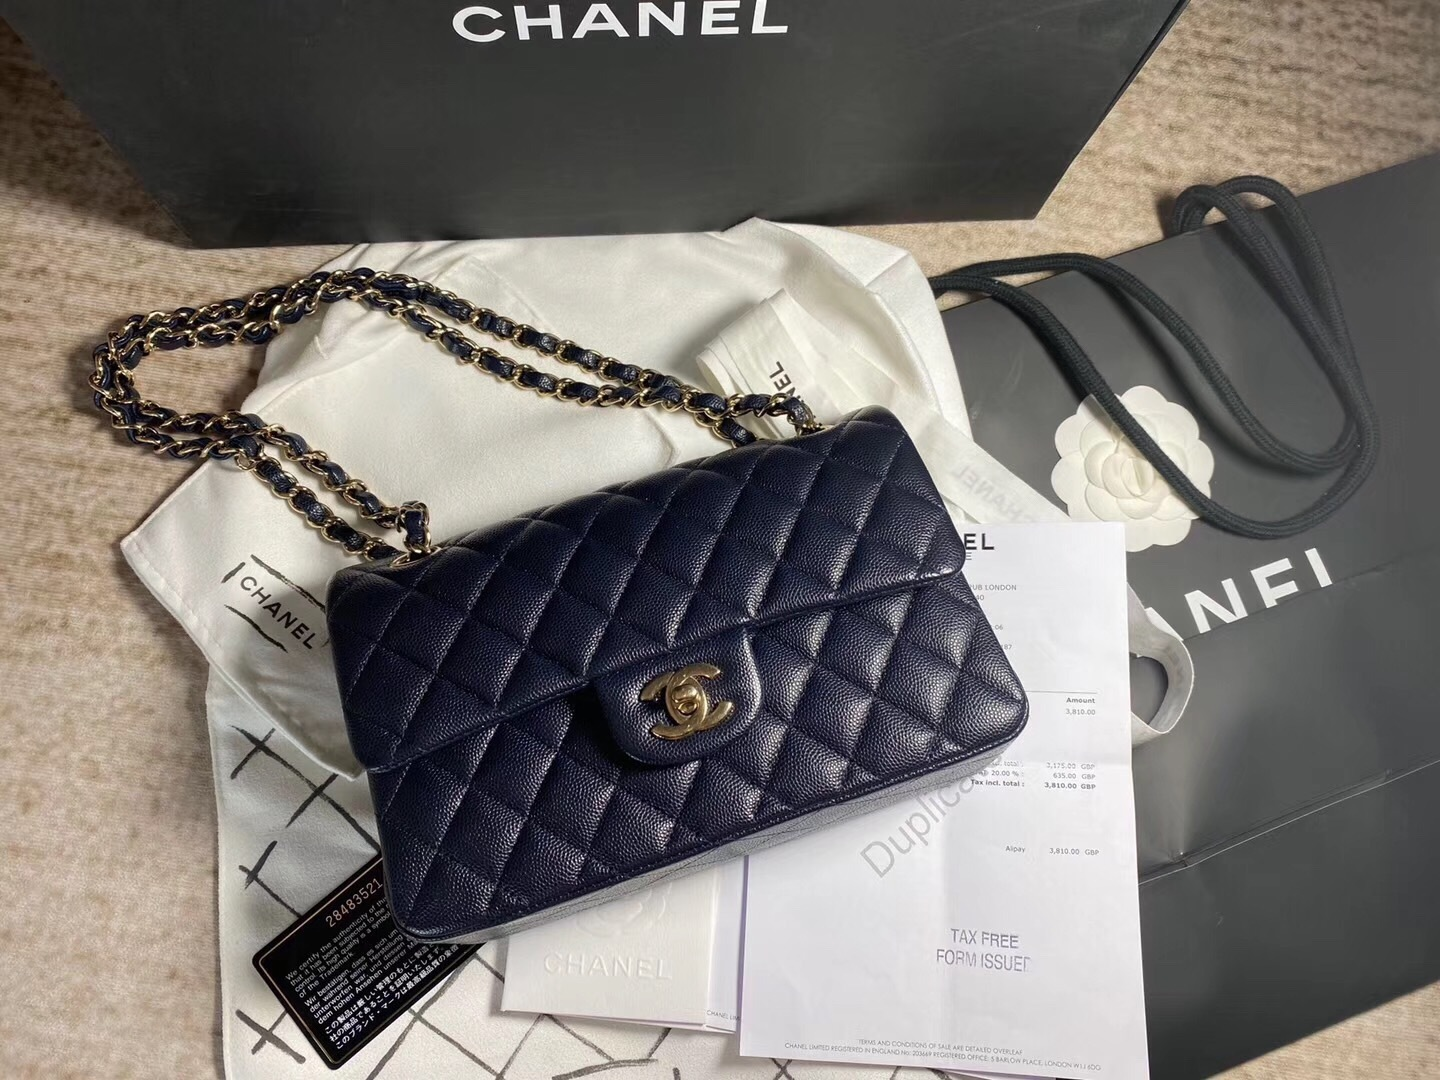 AUTH BNW CHANEL 2019 NAVY CAVIAR QUILTED SMALL DOUBLE FLAP BAG GHW RECEIPT